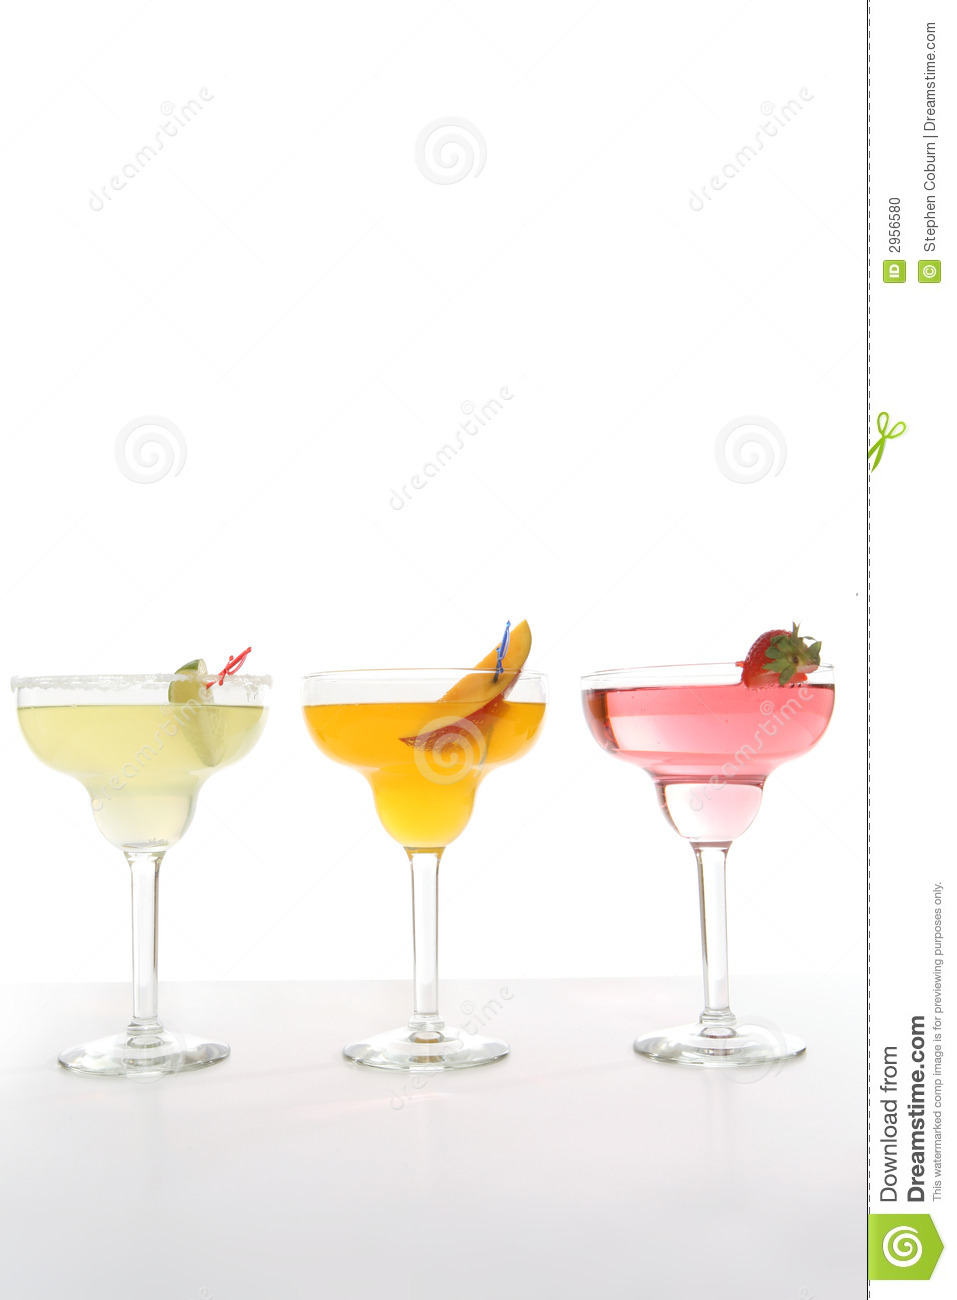 Three colorful cocktails over a white background.